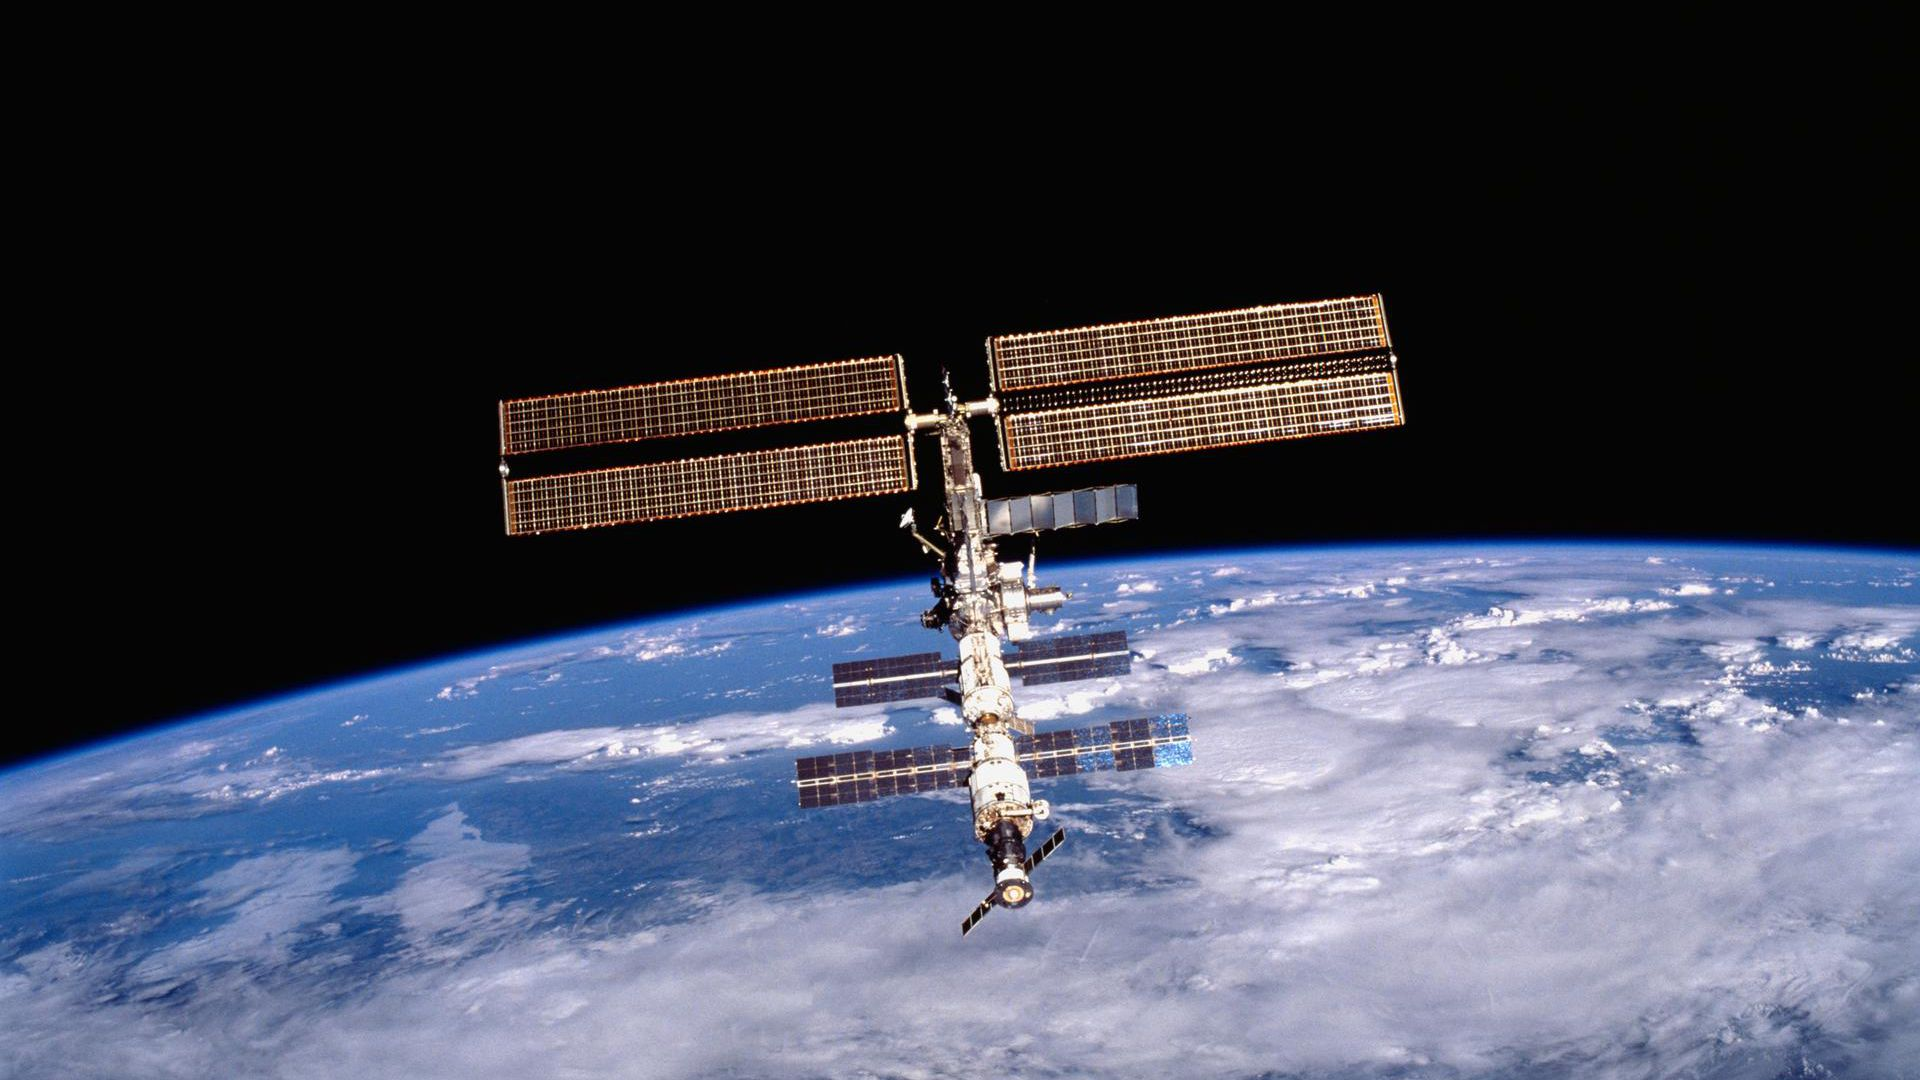 An image of the International Space Station taken from the Space Shuttle Discovery during a 2001 mission.